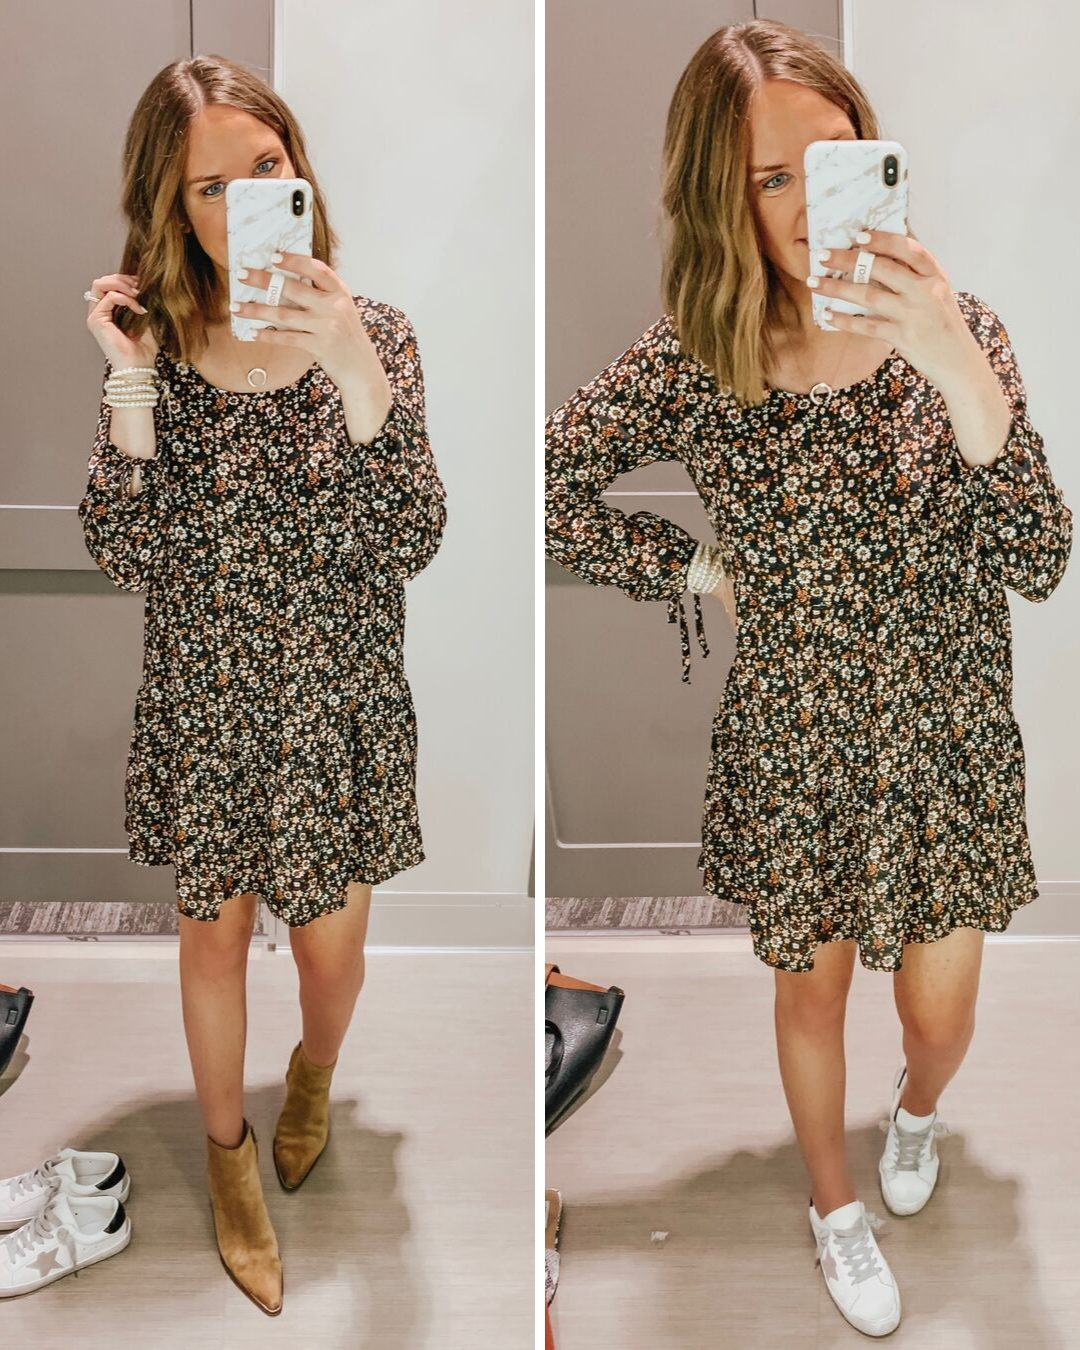 Target fall fashion preview 2019, Fall dresses AT TARGET, dresses with sneakers